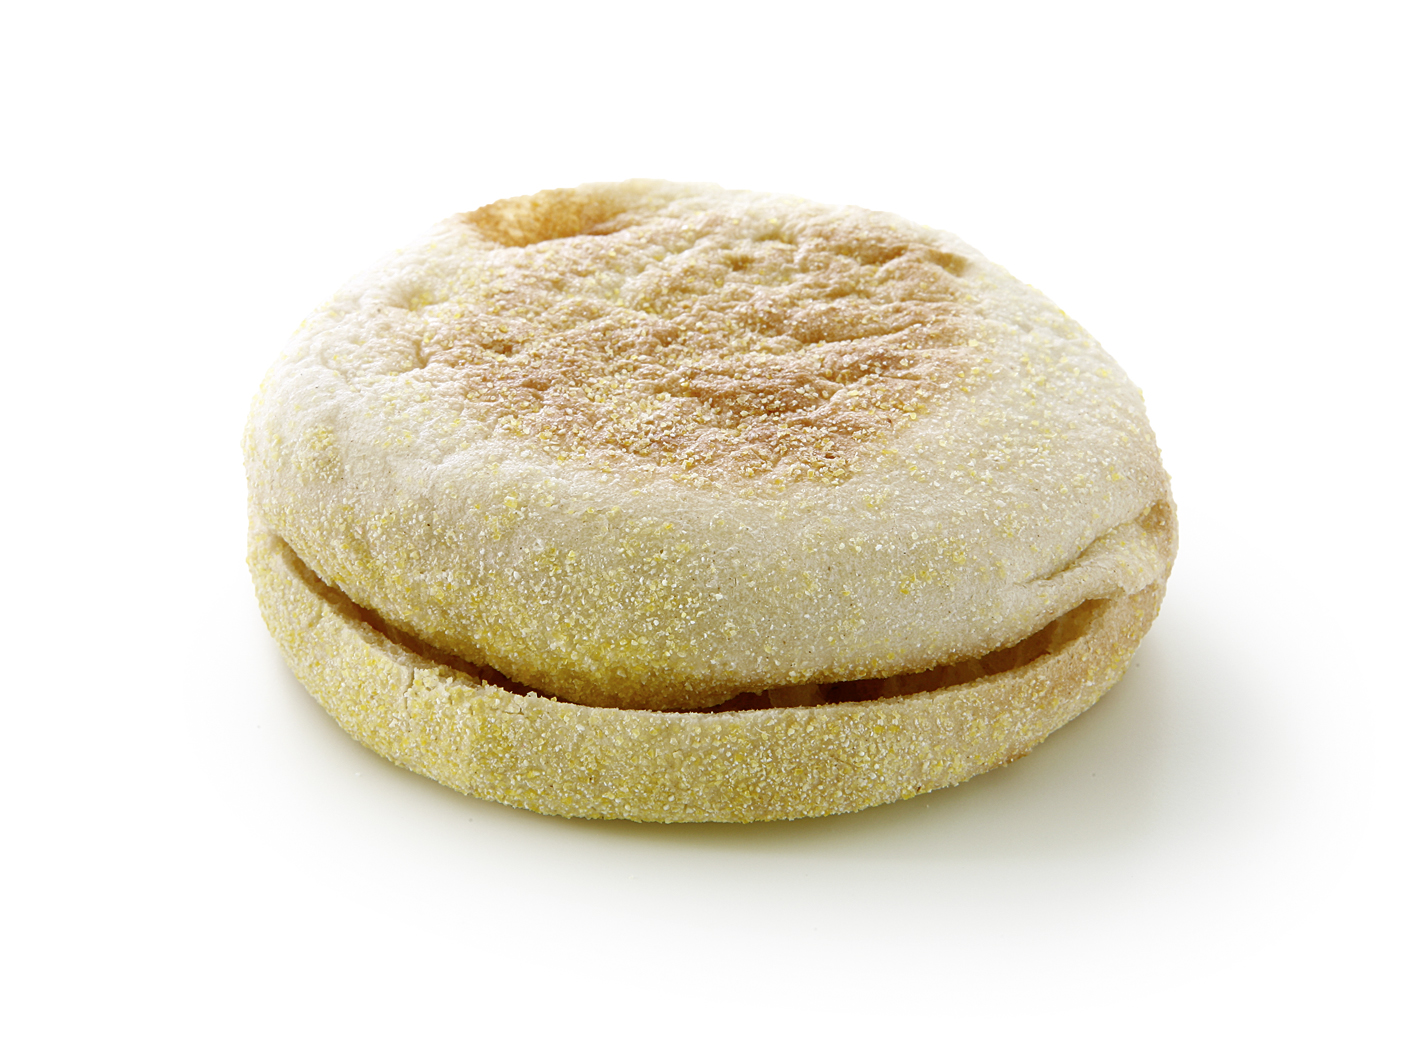 English Muffin - After thawing put into the toaster until the desired degree of browning.